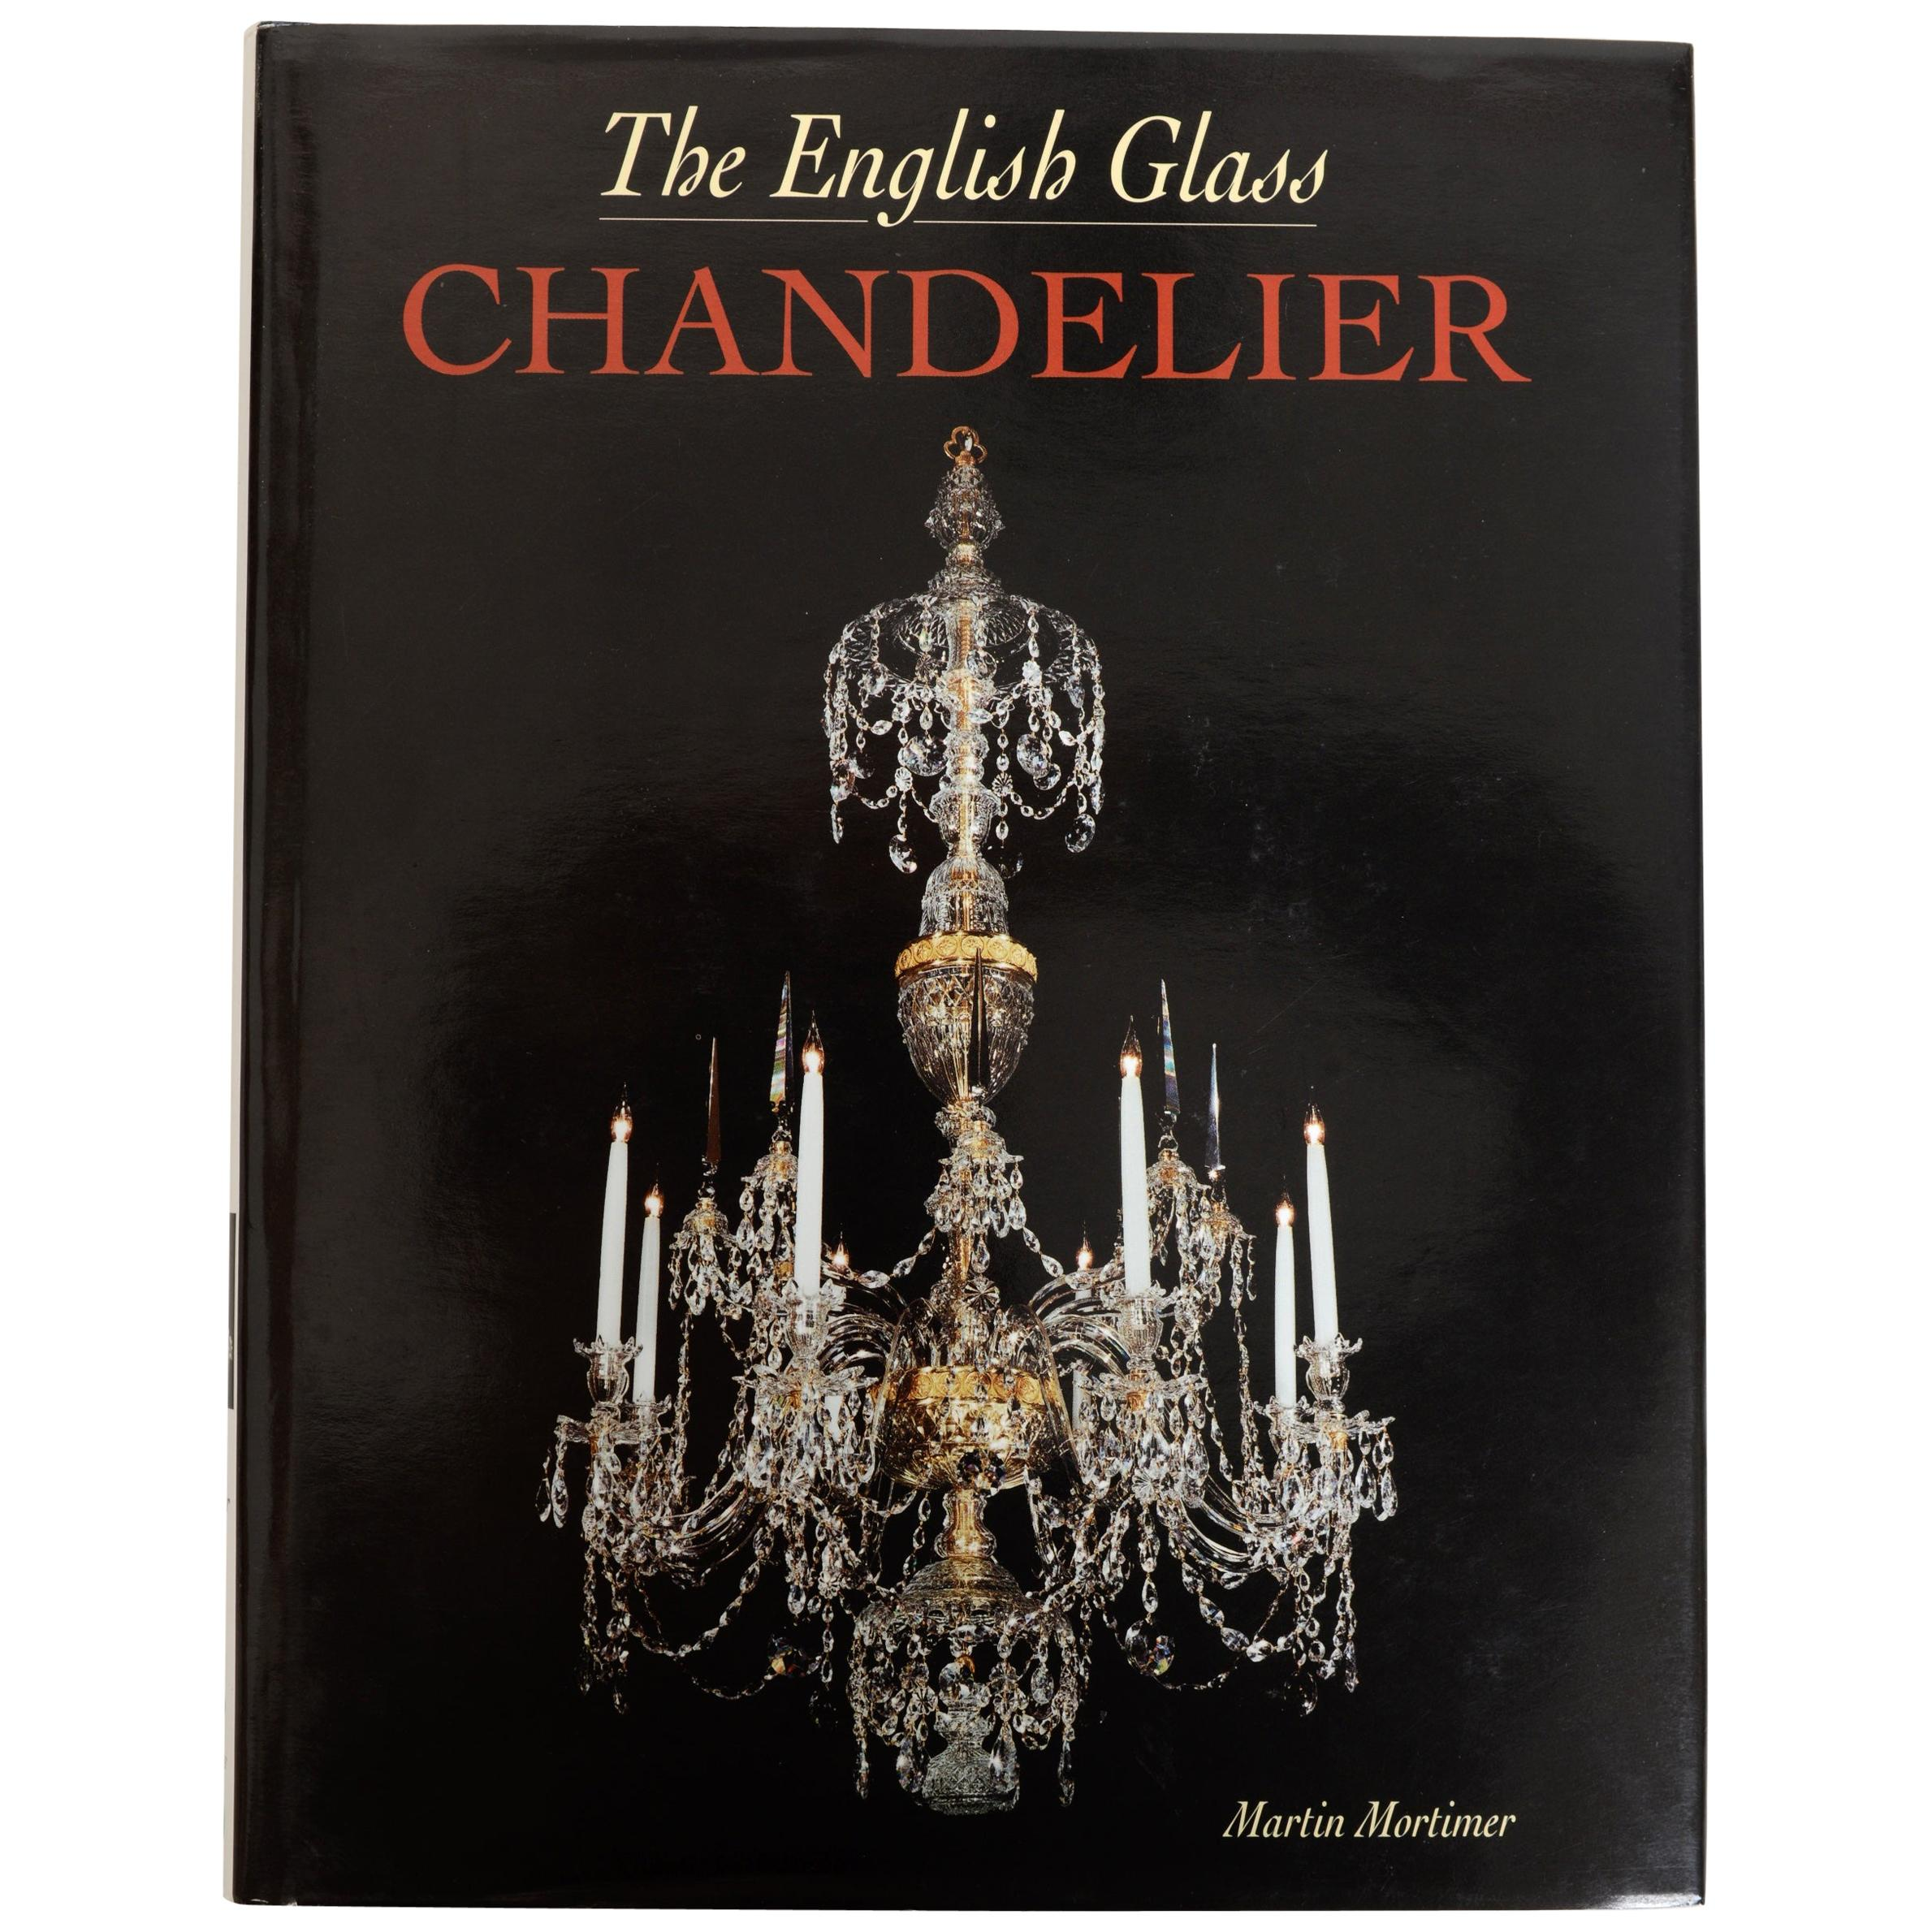 'The English Glass Chandelier' by Martin Mortimer, First Edition